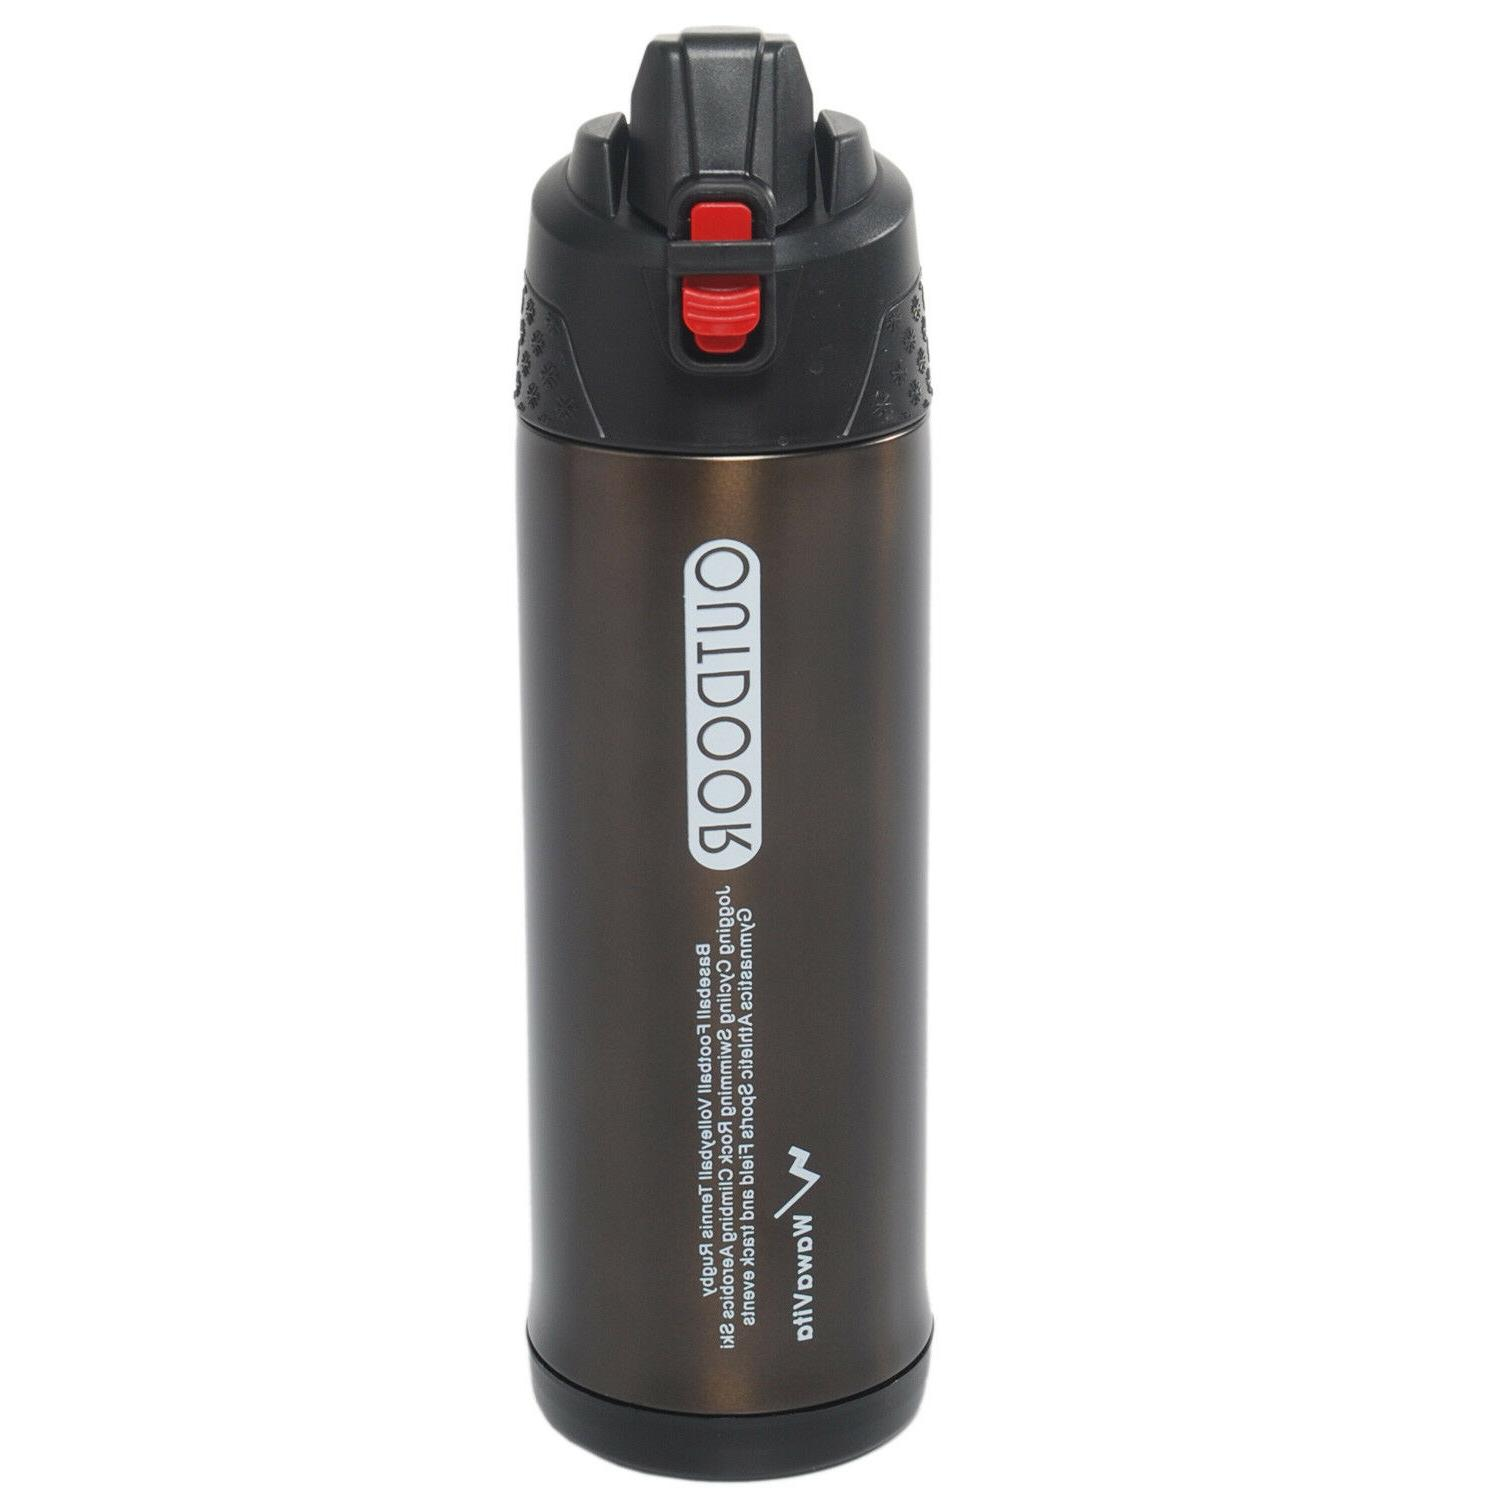 25 oz/750ml Thermos Double Walled Vacuum Flask Stainless Ste